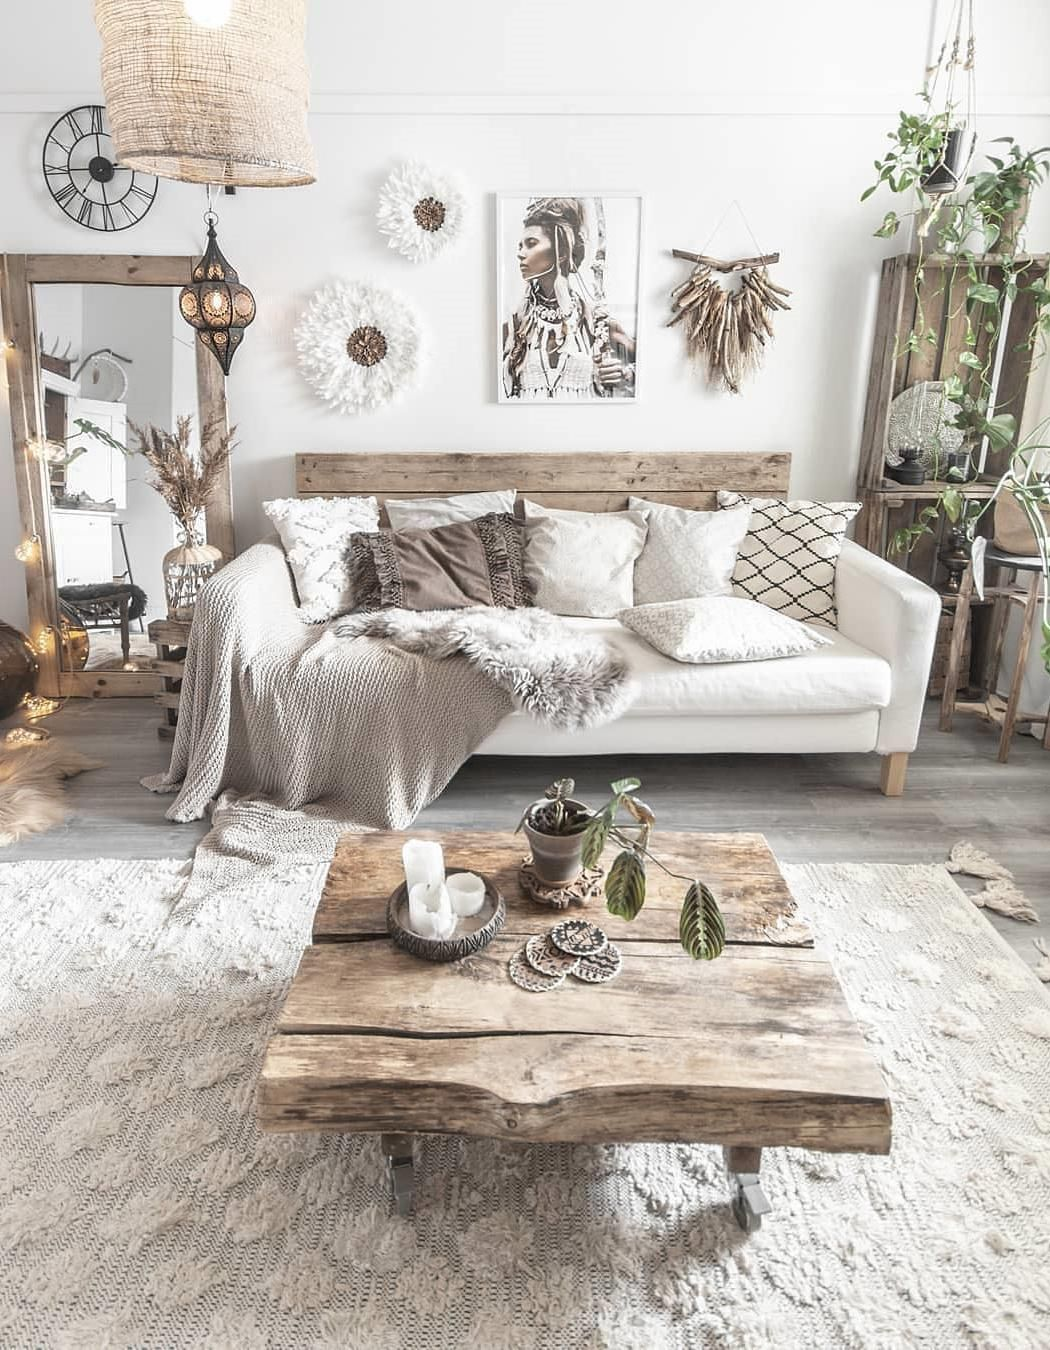 50 Inspiring Living Room Decorating Ideas These Trendy Homedecor Ideas Would Gain You Amazing Compl Chic Home Decor Wall Decor Living Room Living Room Designs